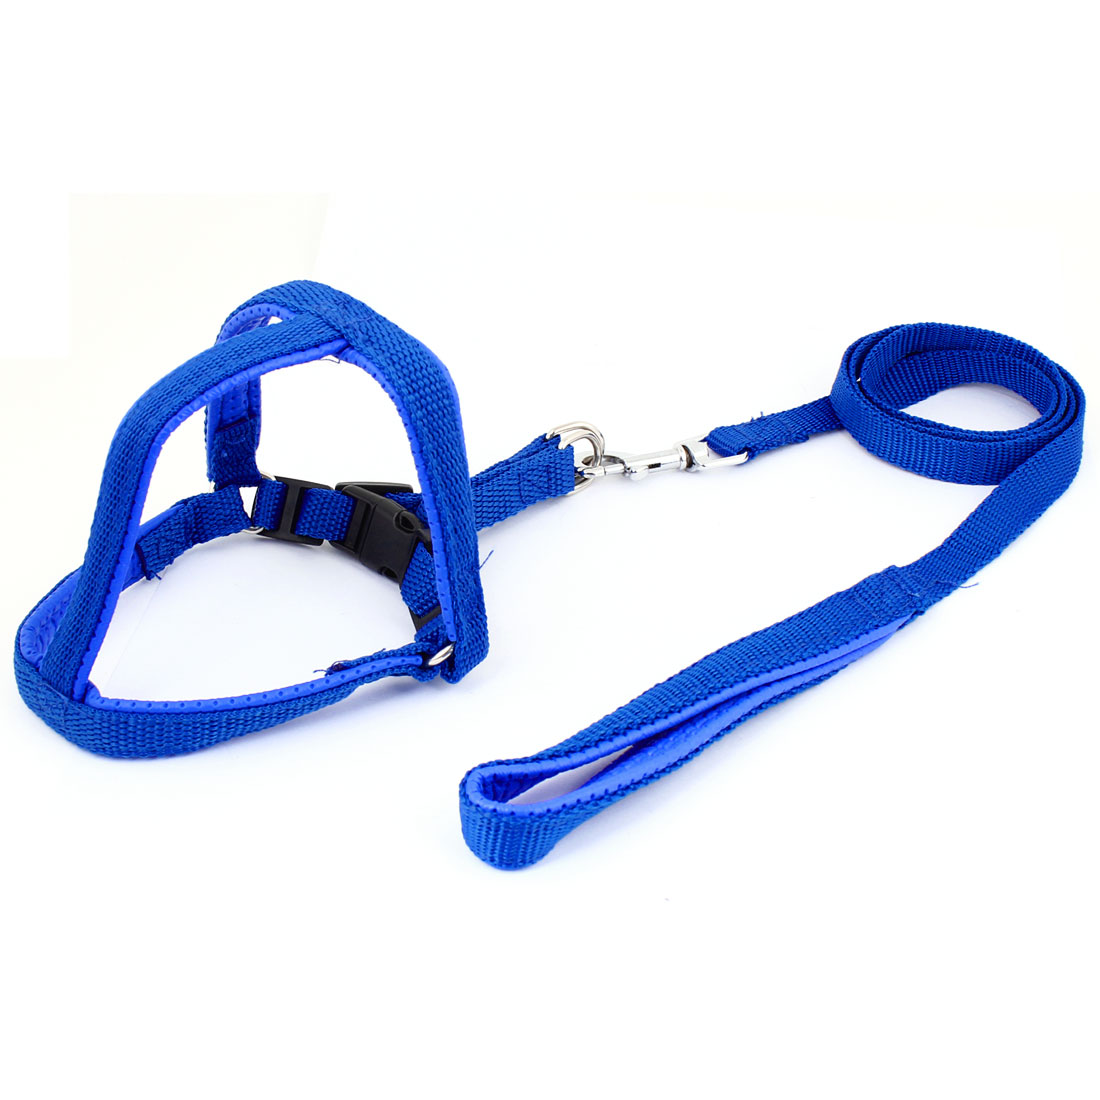 "Pet Dog Blue Nylon 0.59"" Wide Rope Adjustable Harnless with Lead Leash S"